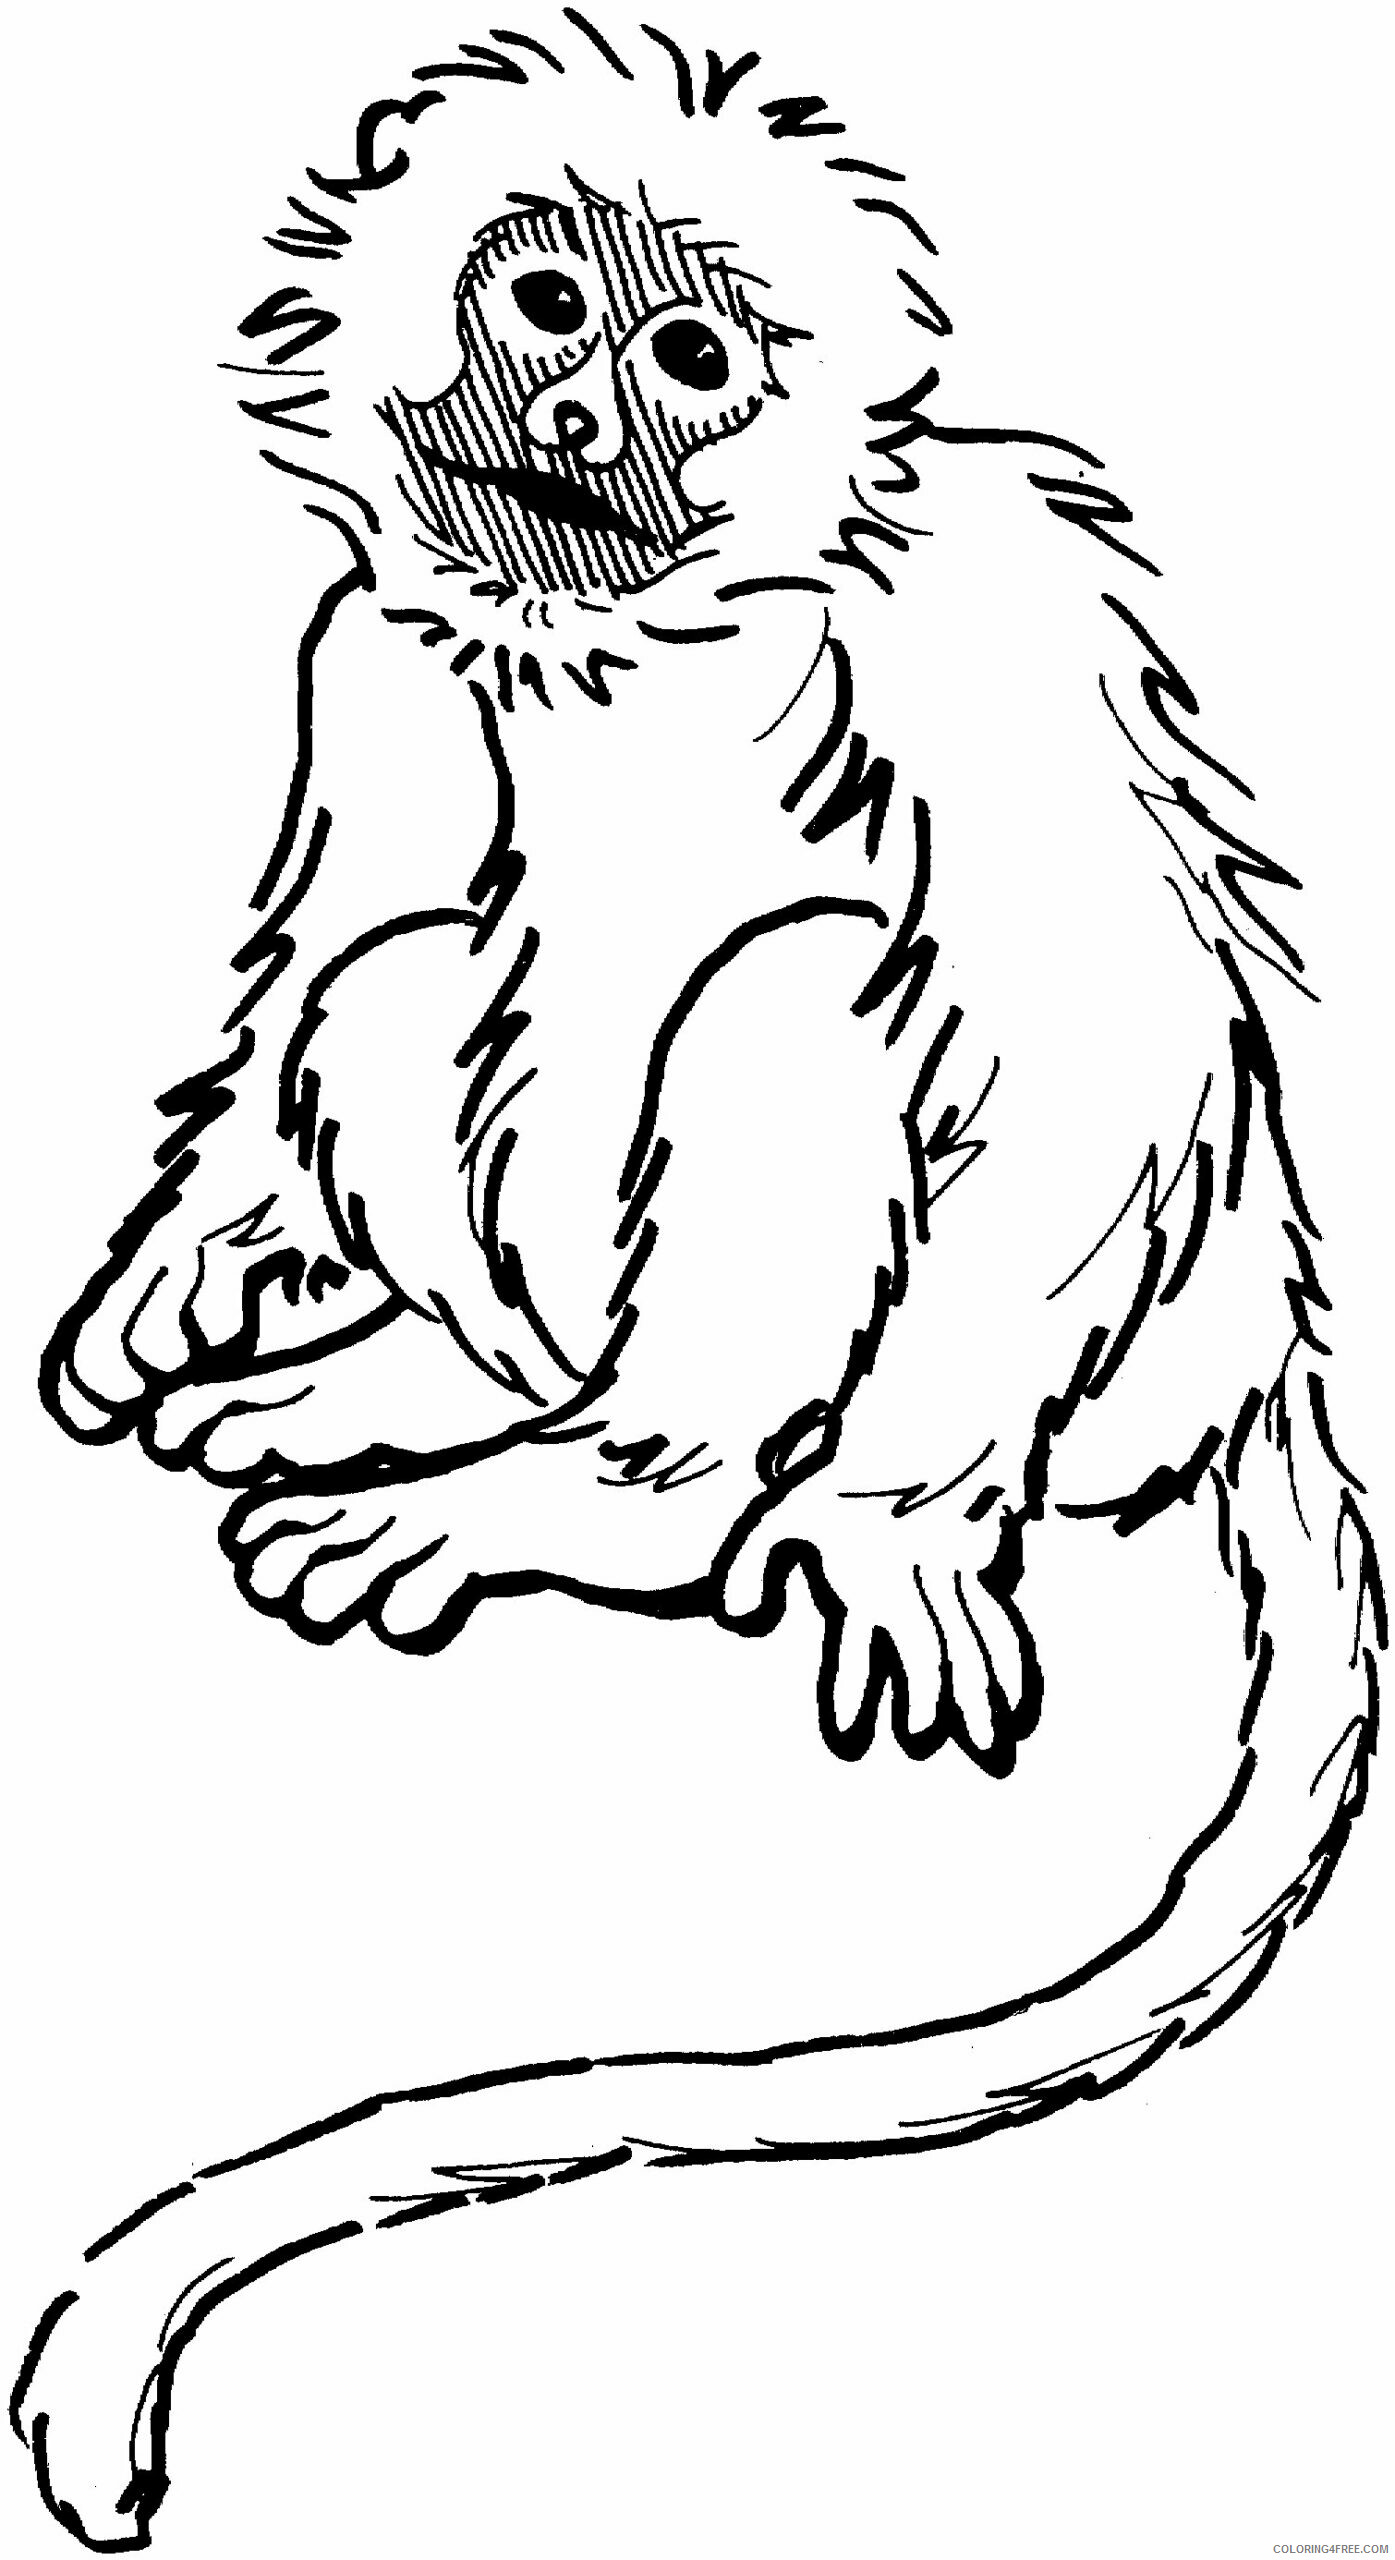 Monkey Coloring Pages Animal Printable Sheets Free Monkey 2021 3305 Coloring4free